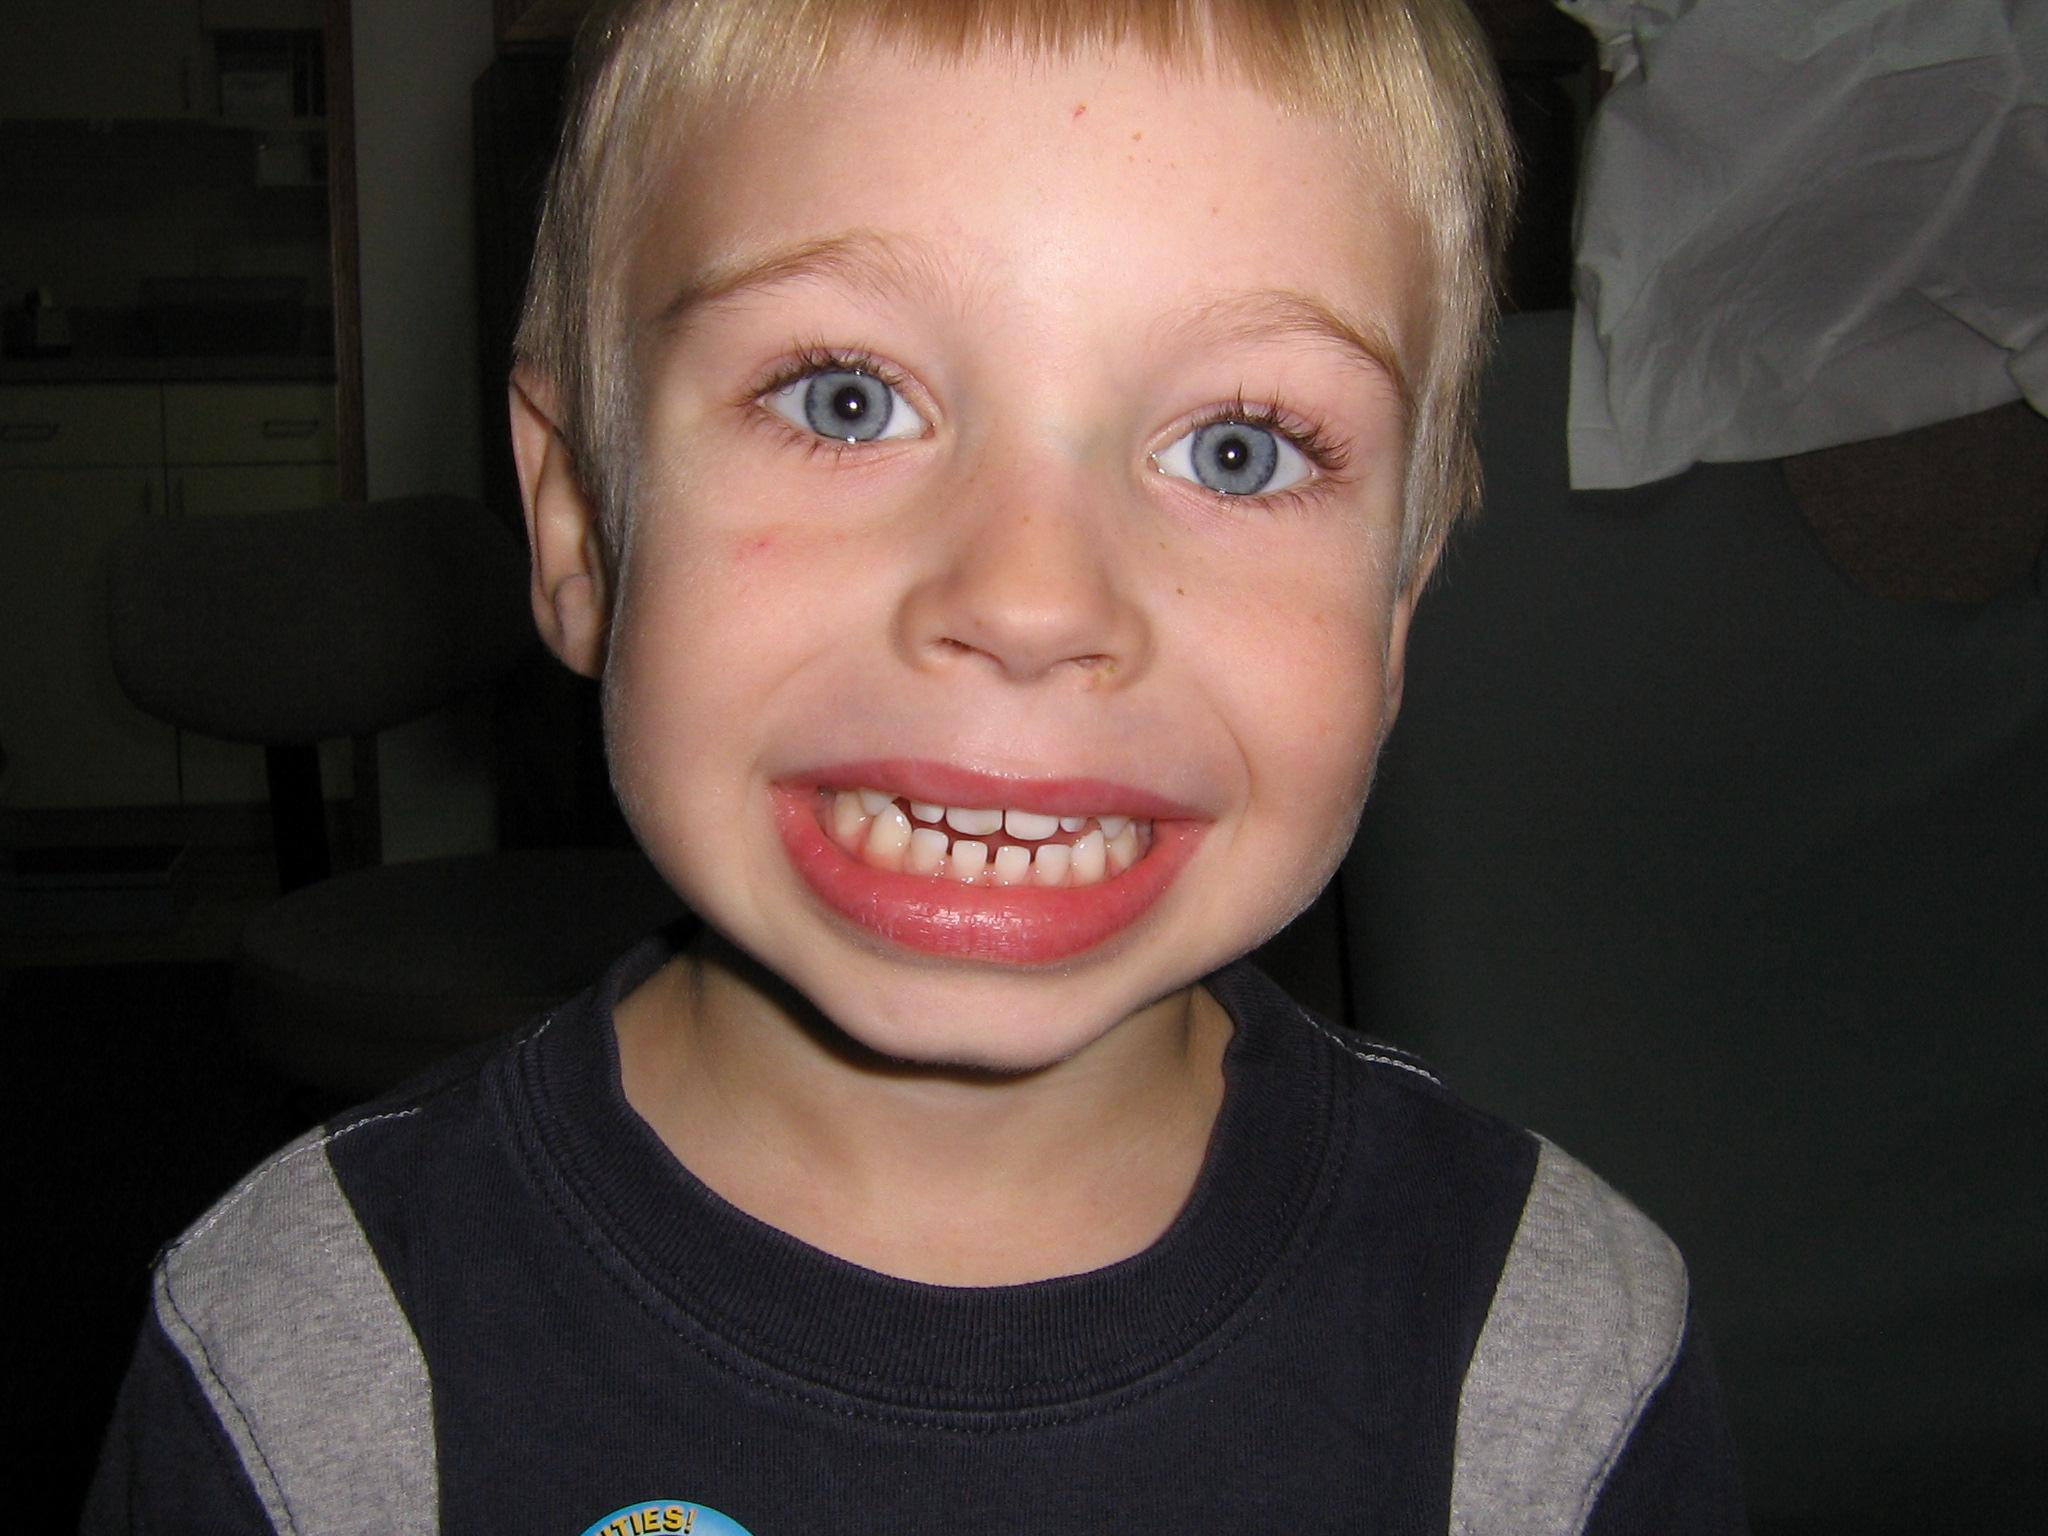 Here is a no cavity club poster boy Eli